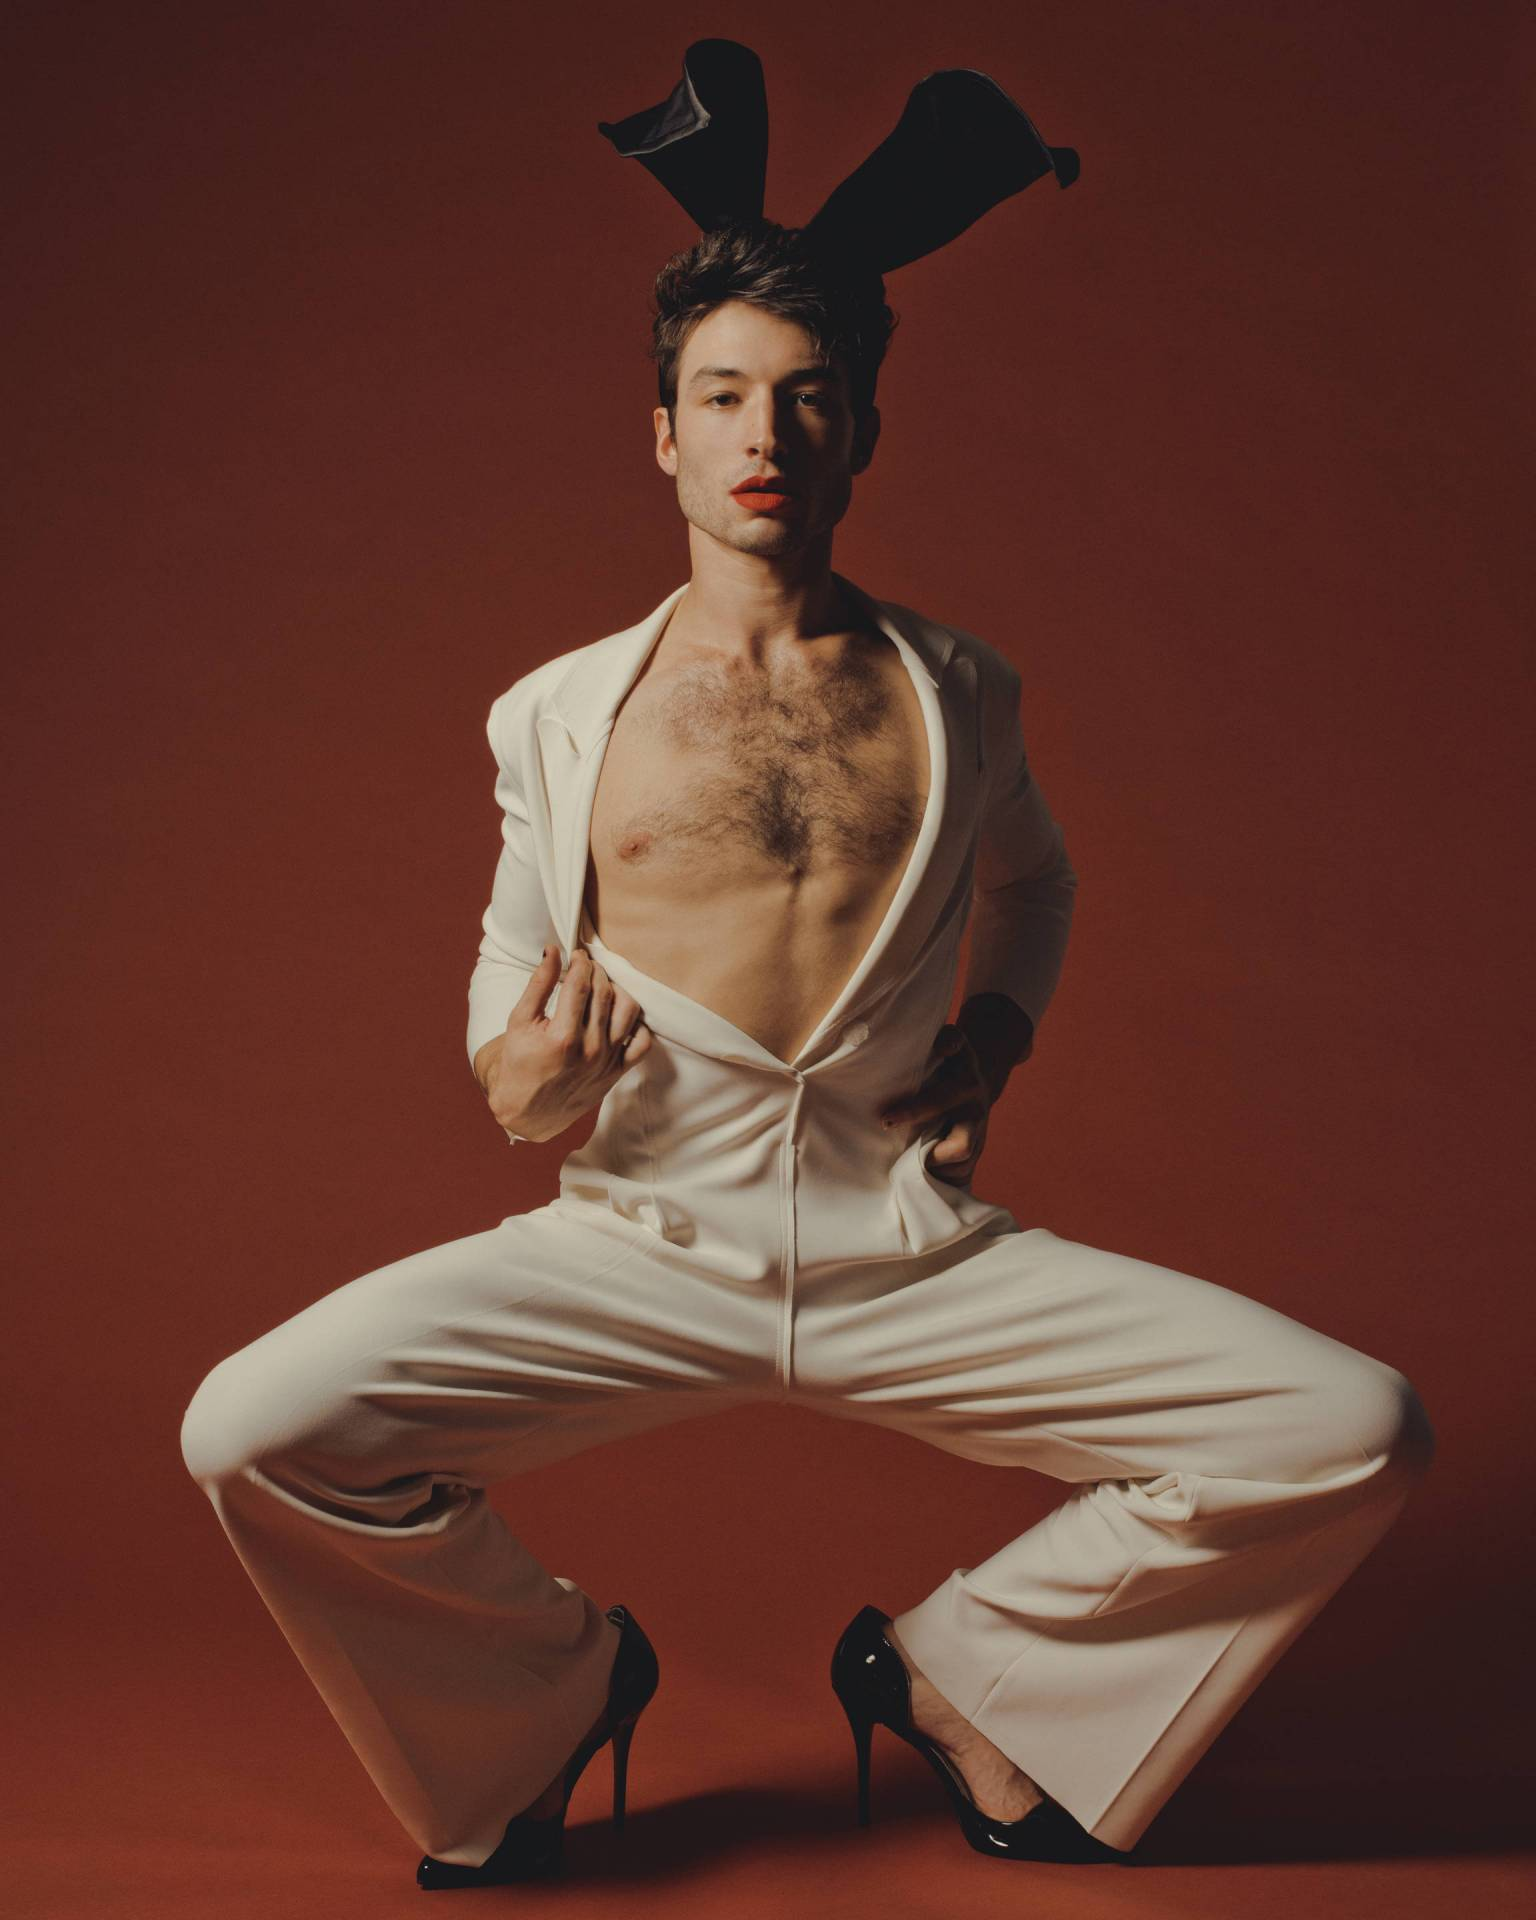 ezra miller photo shoot 5